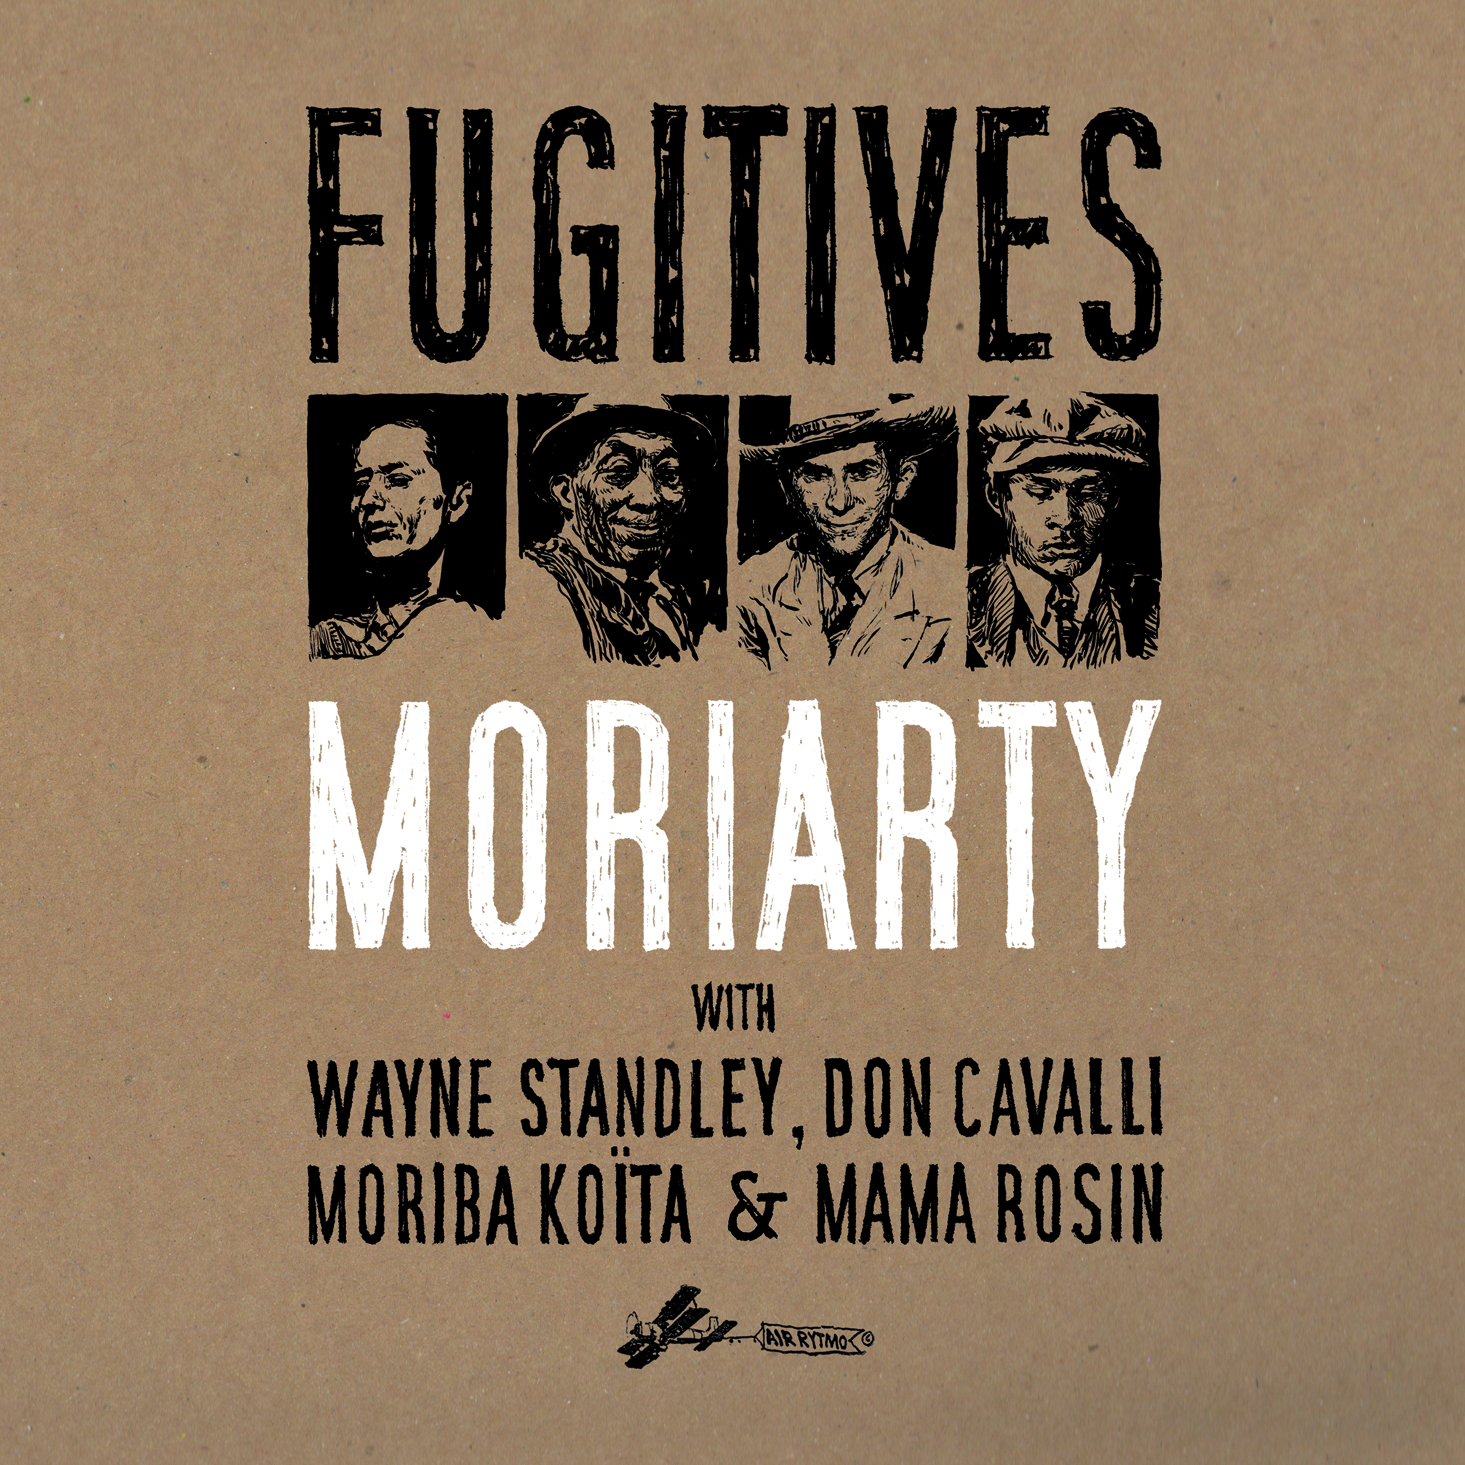 2013-10-10-Moriarty_Fugitives_packshot_low.jpg